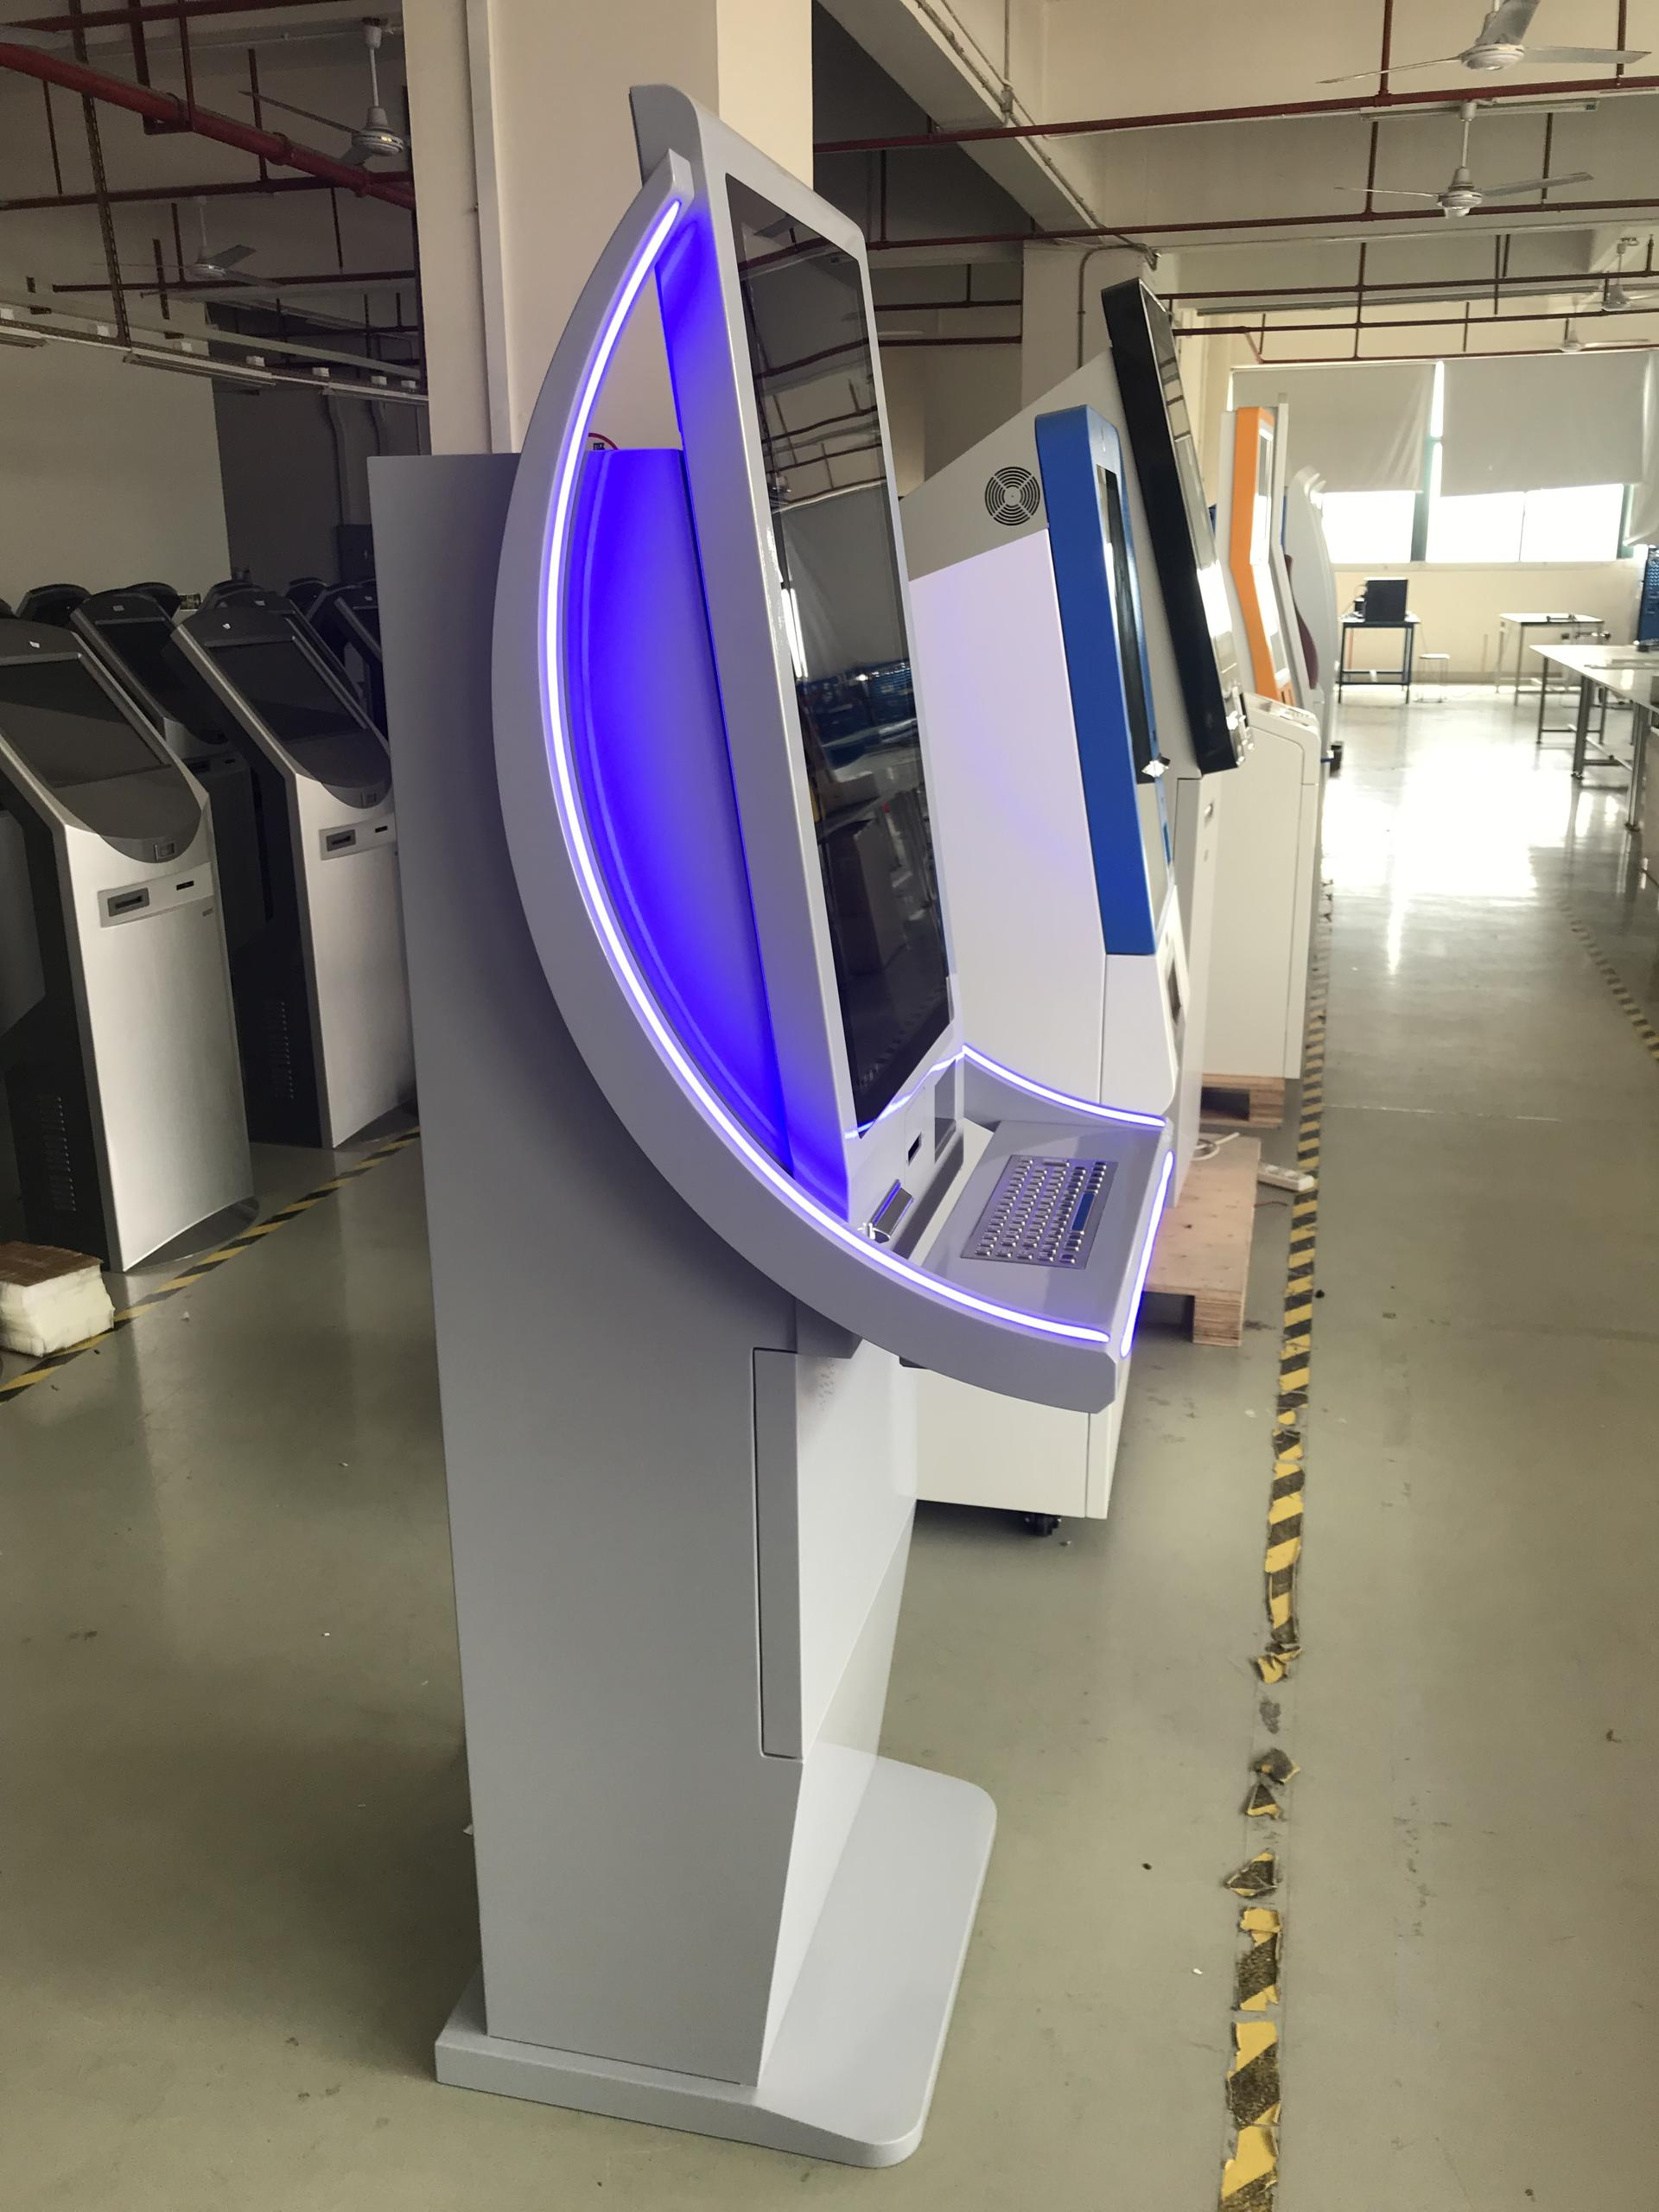 Self-service interactive touch screen foreign currency exchange kiosk